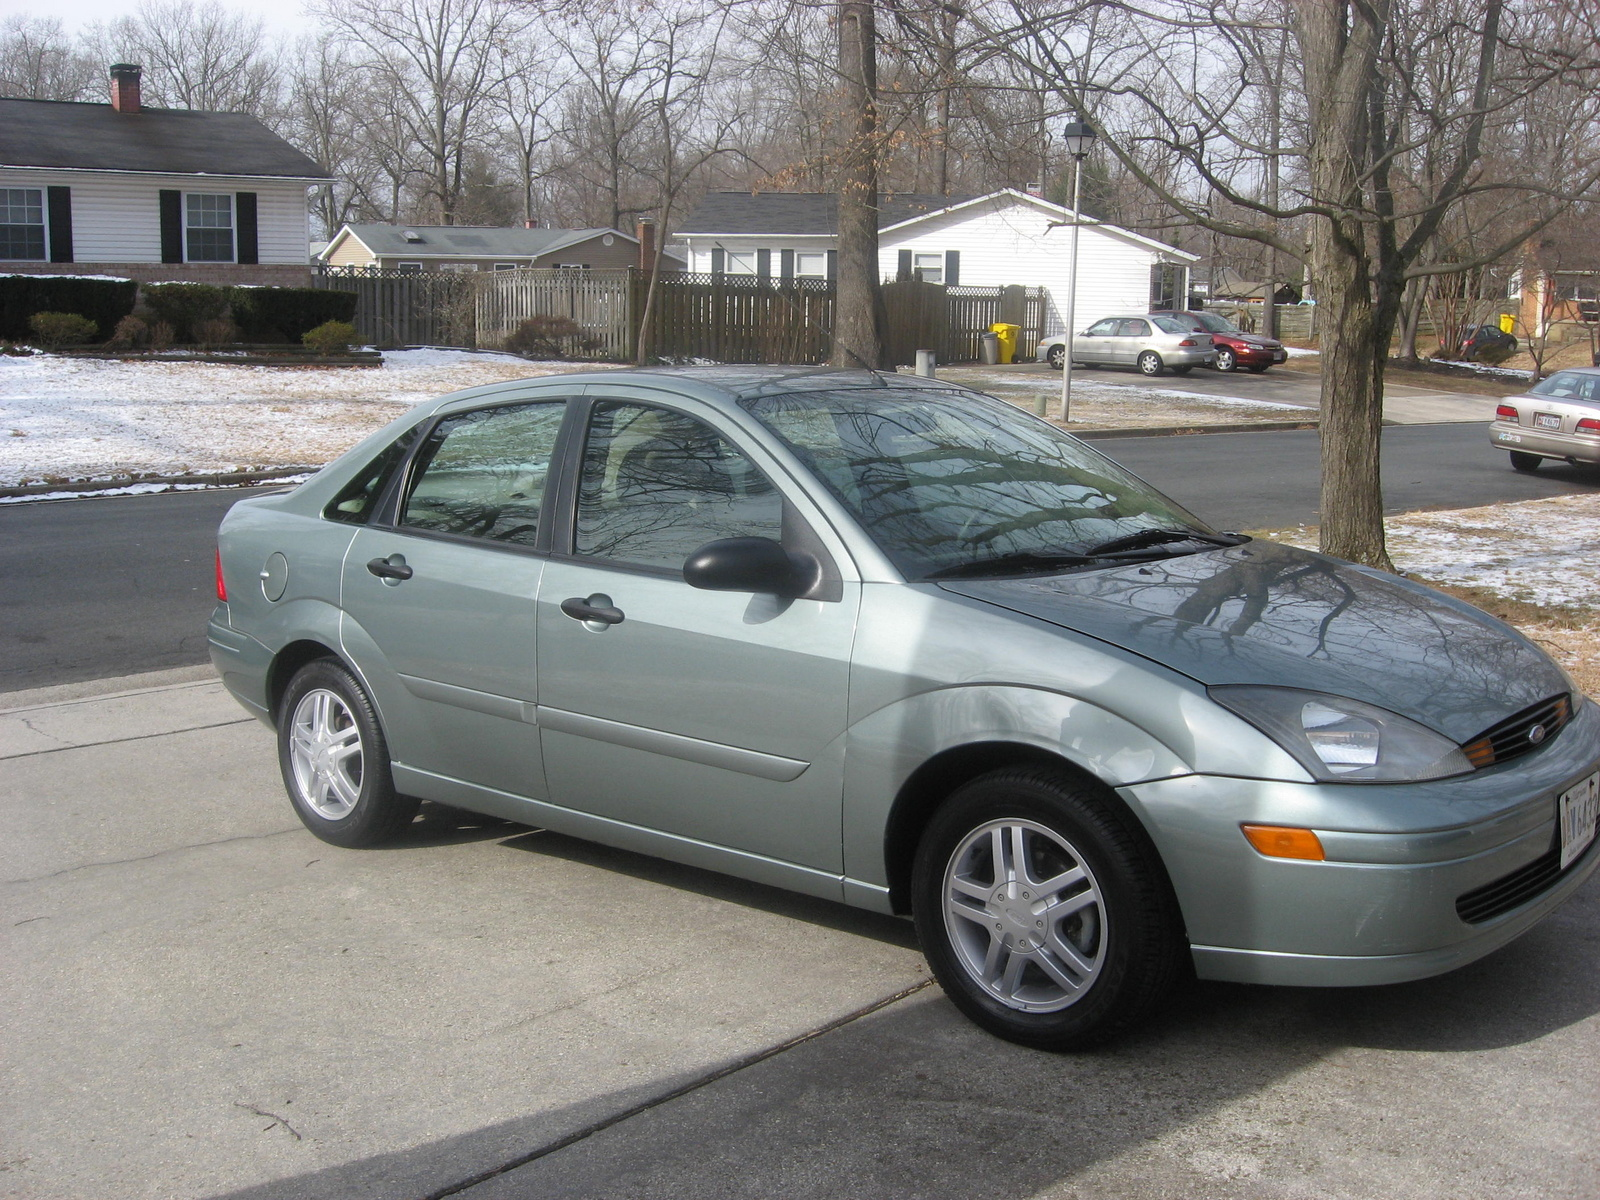 2003 Ford Focus Pictures C129 as well o Probar La Bobina De Encendido 1 moreover T2887014 Cooling fan relay located in 1994 likewise Watch in addition 2000 Dodge Neon Timing Belt Diagram. on 2000 ford windstar engine